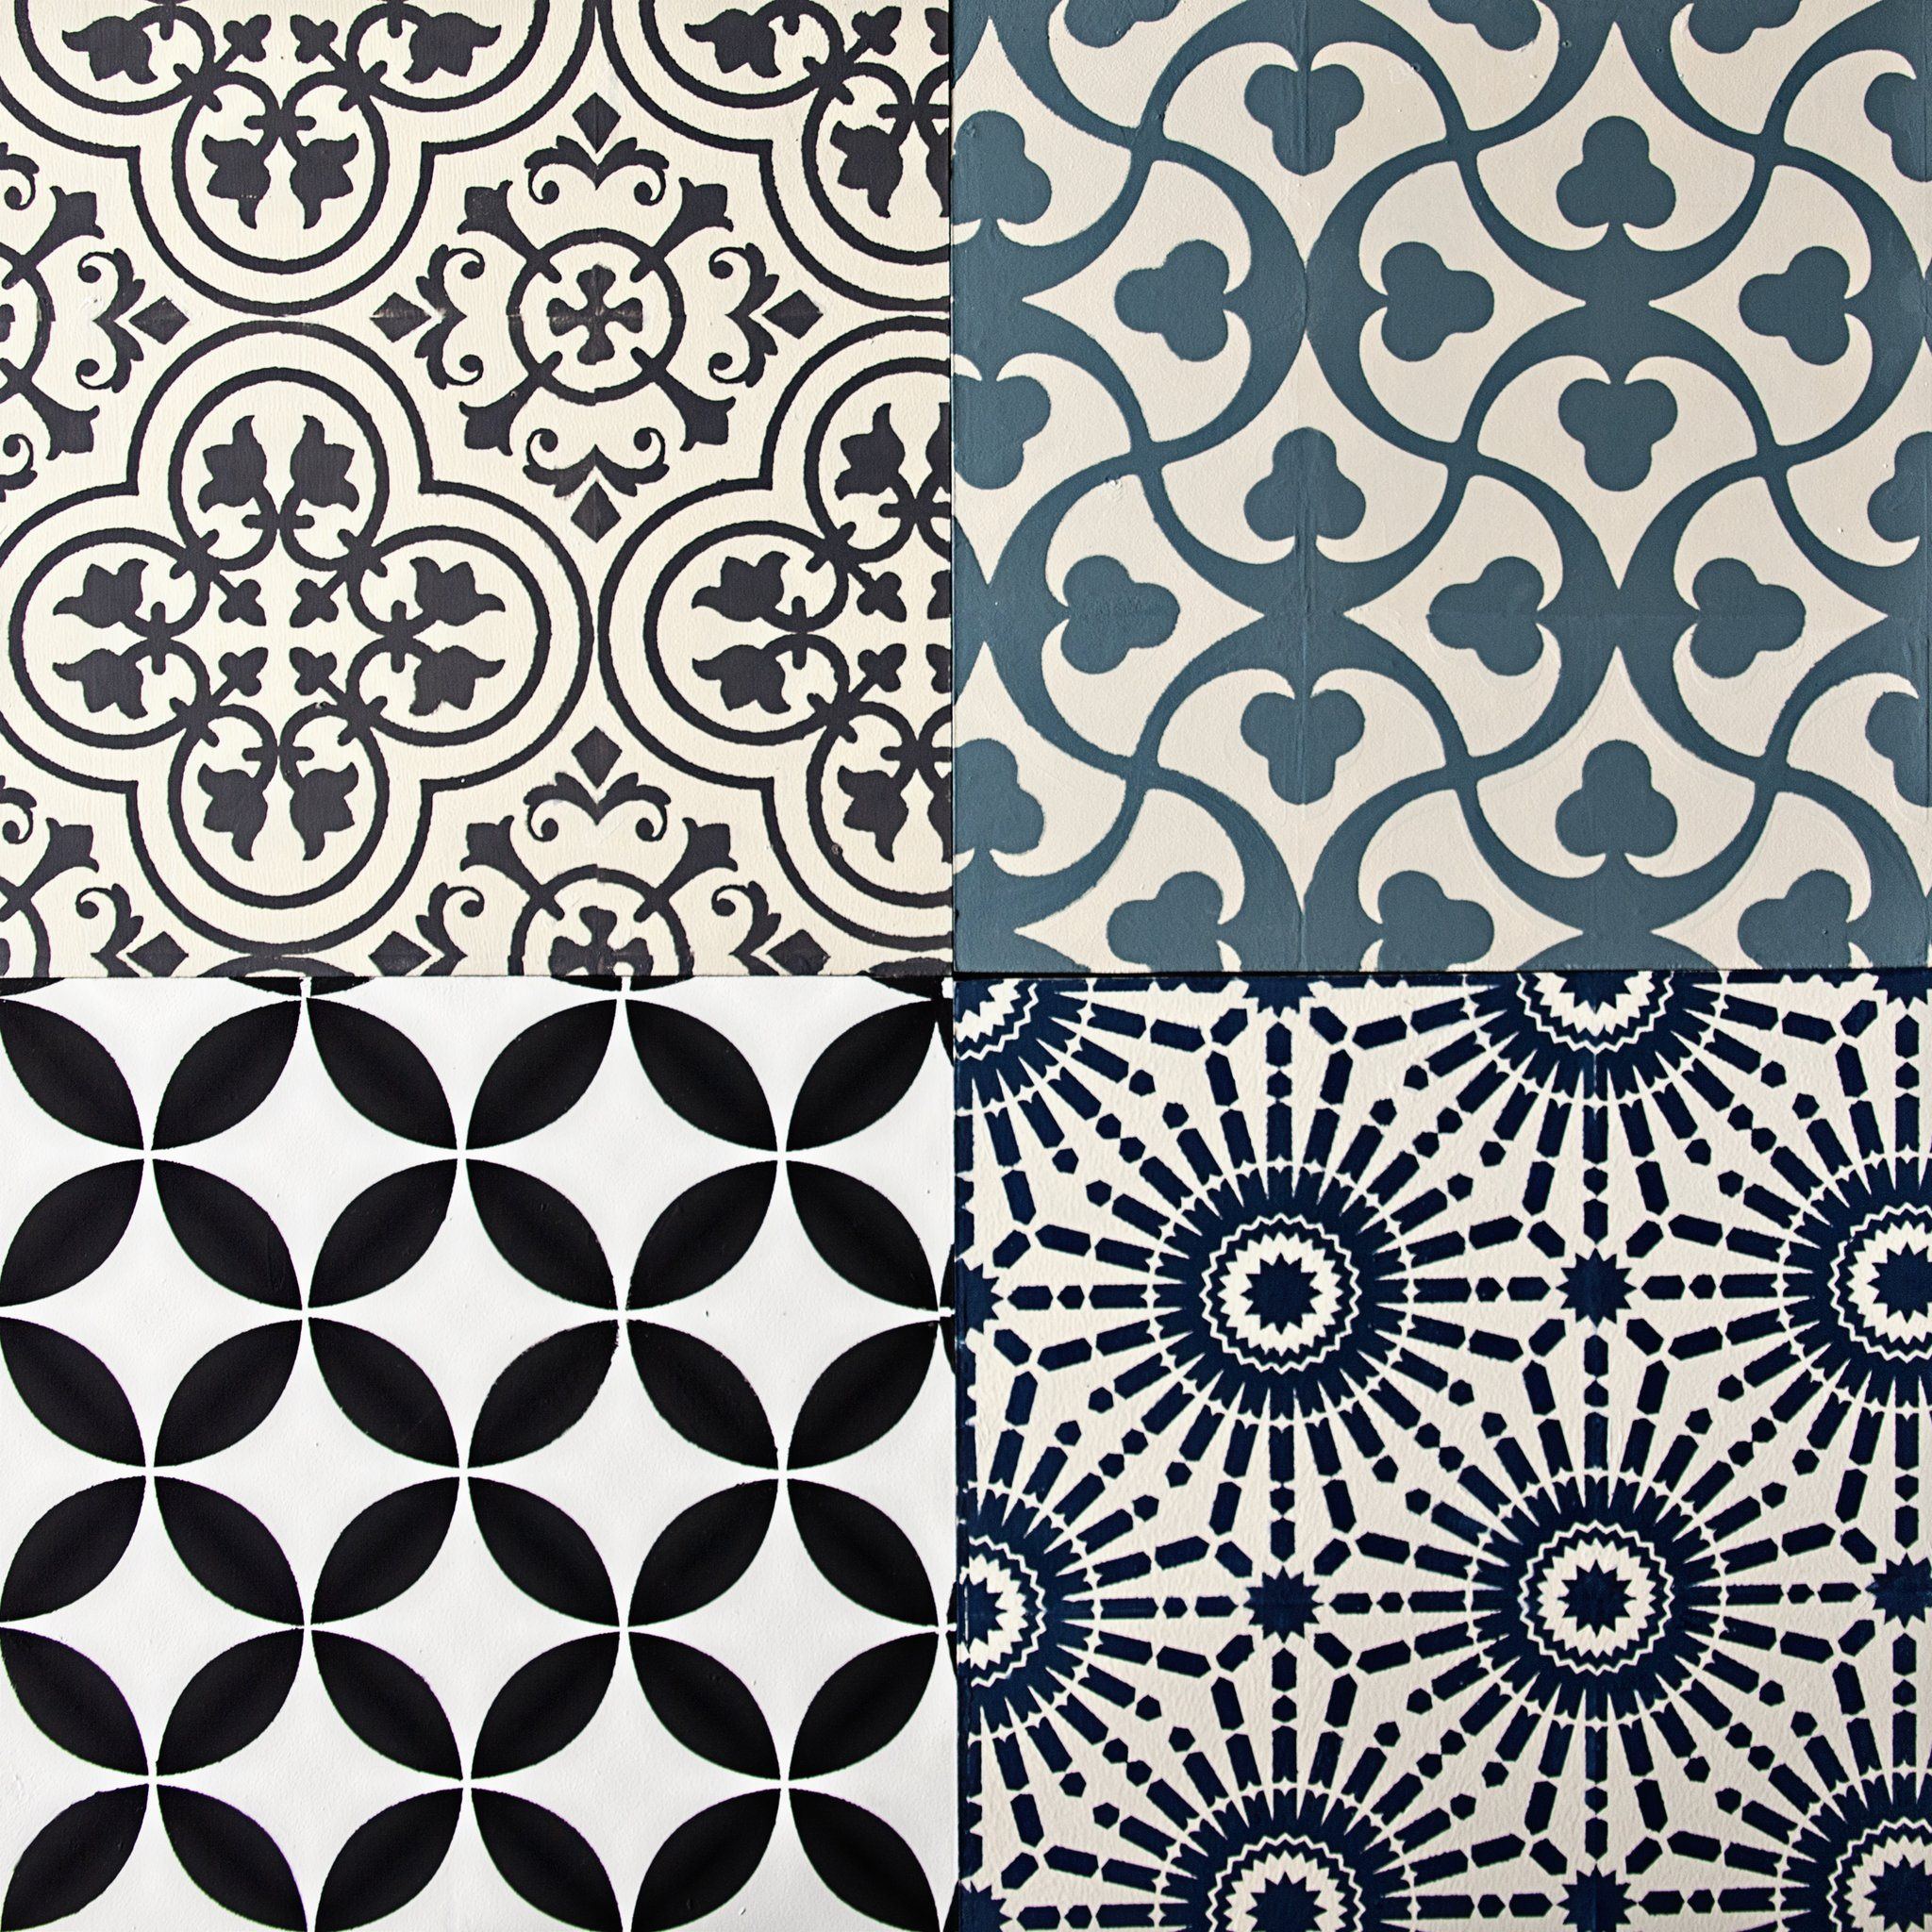 Mesh Stencil Floor Tile Traditional 12x12 In 2020 Stenciled Floor Stenciled Tile Floor Cement Tile Shop